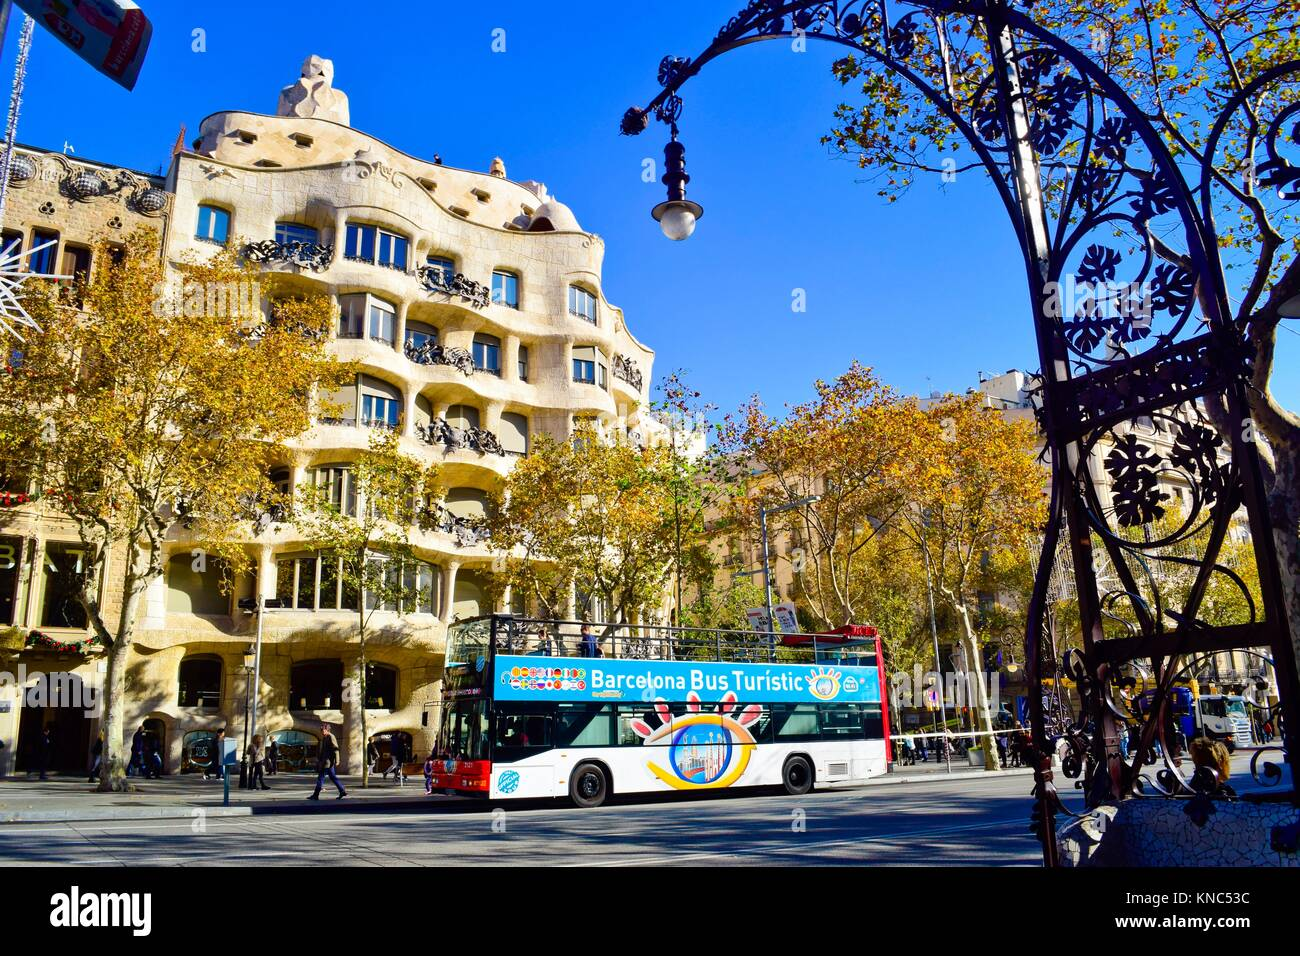 Barcelona Bus Turistic in front of Casa Milà, better known as La Pedrera. Designed by the Catalan architect - Stock Image